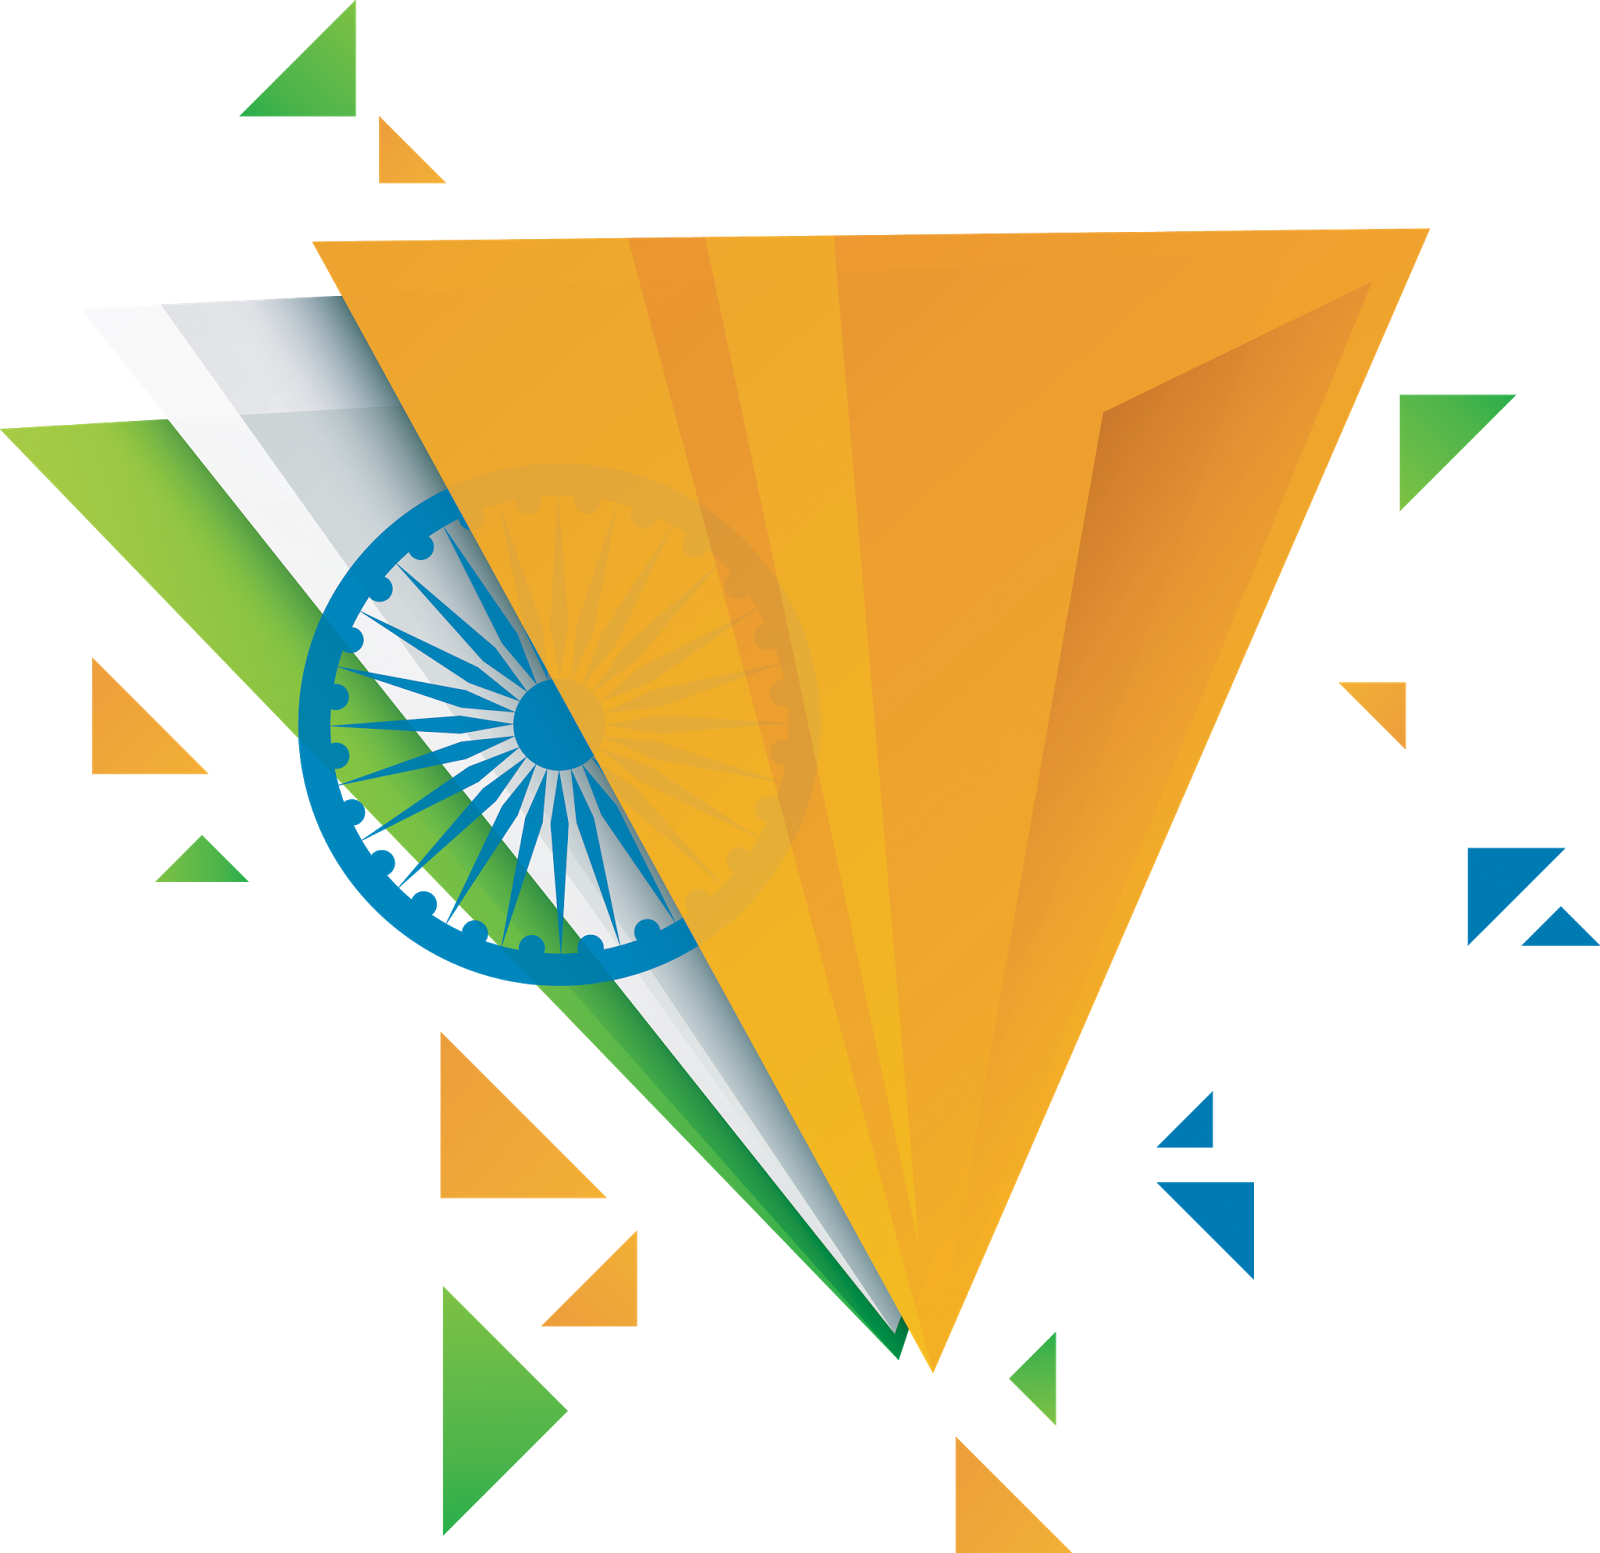 indian flag download india flag png images transparent gallery ping #38536